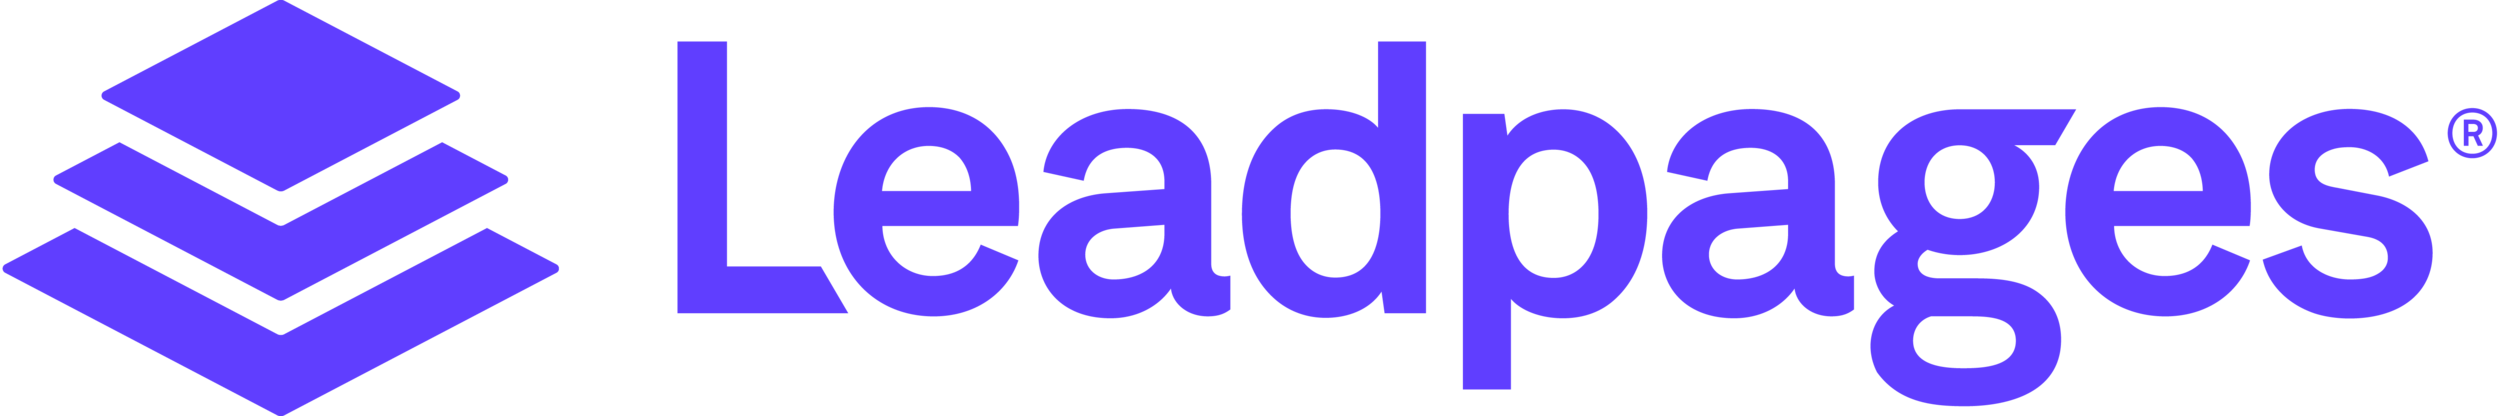 Leadpages_Wordmark_Purple.png